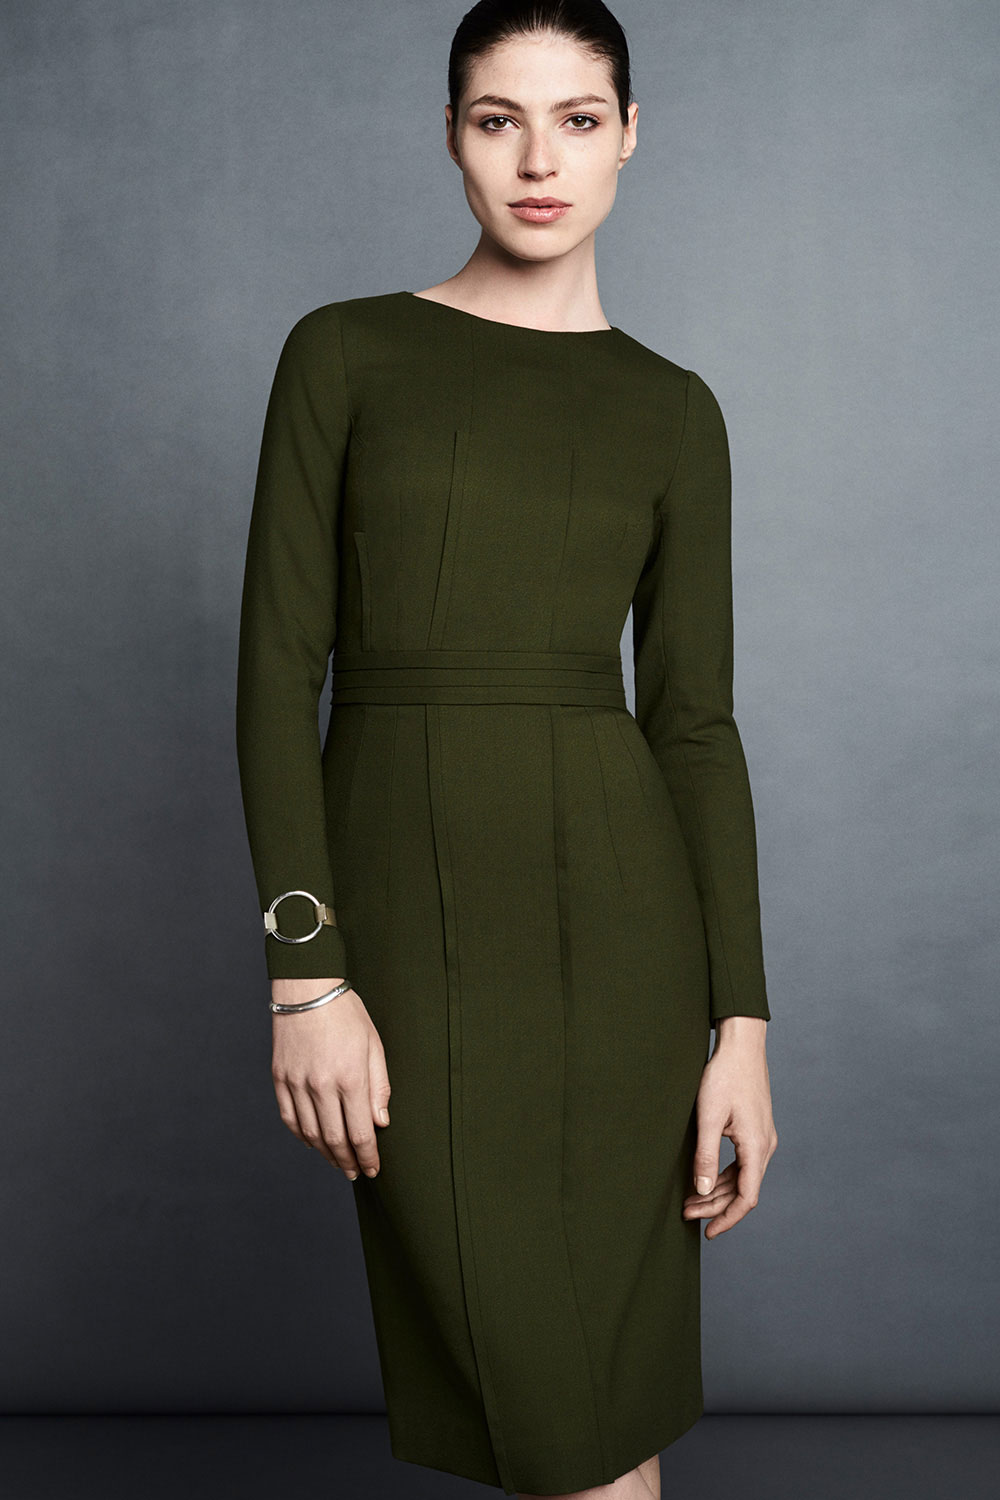 Montague Dress Forest Green Wool Crepe